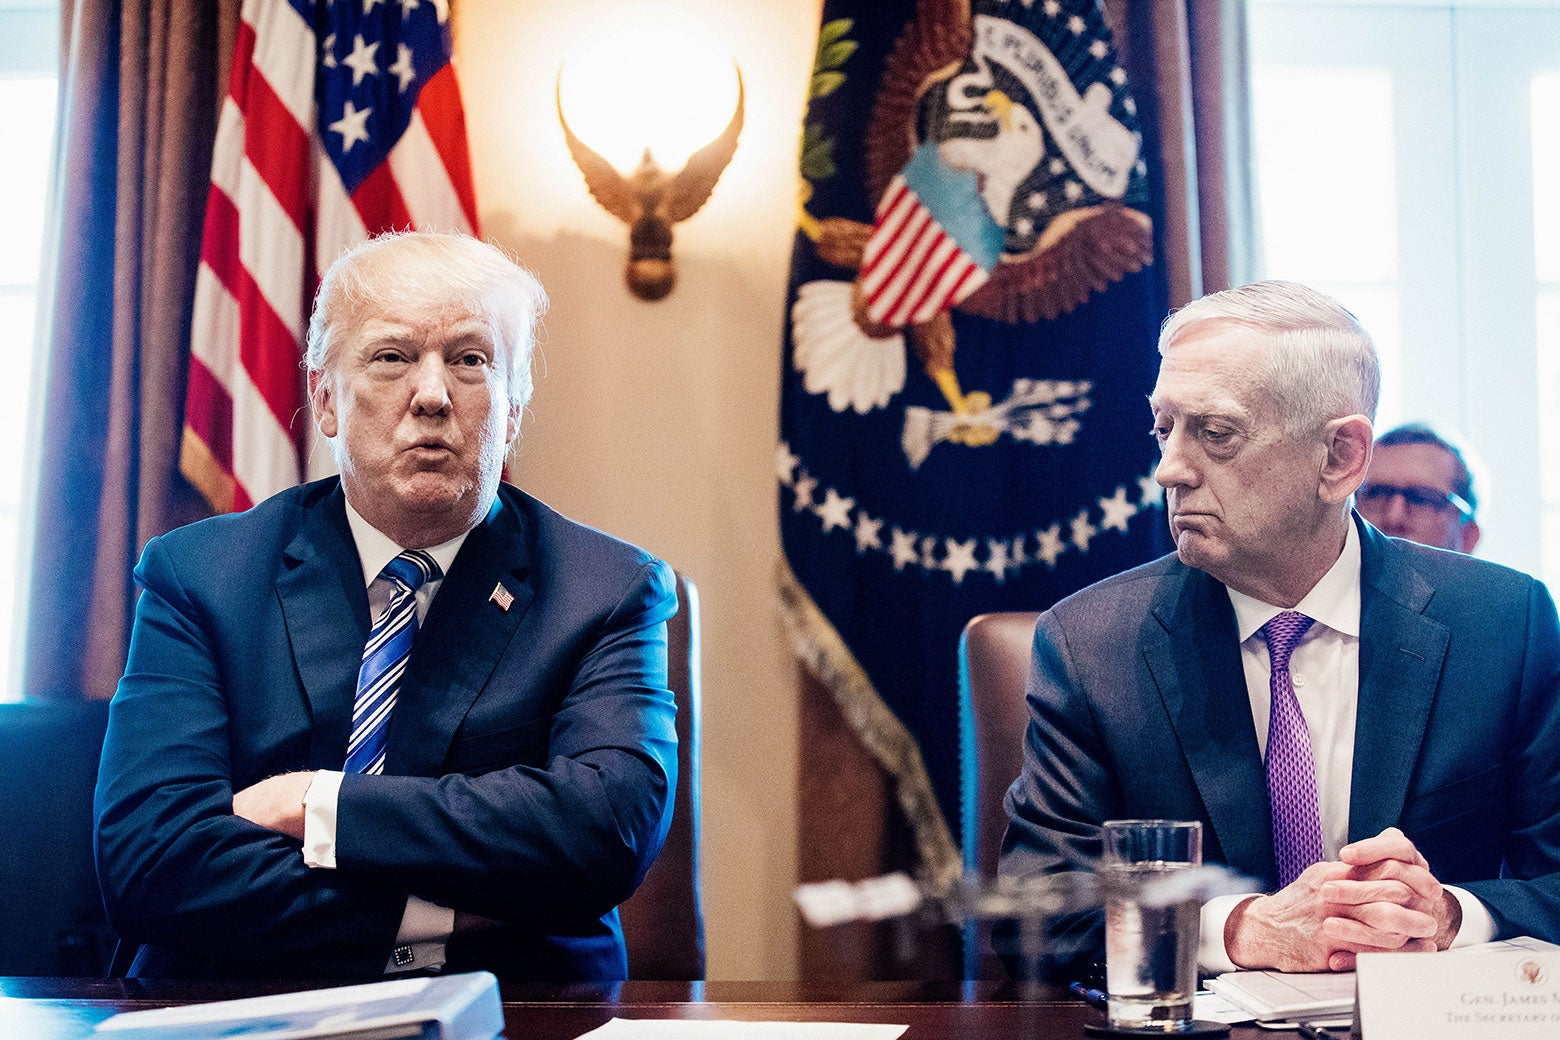 President Donald J. Trump speaks beside  Secretary of Defense Jim Mattis during a meeting with Cabinet members on March 8 in Washington.